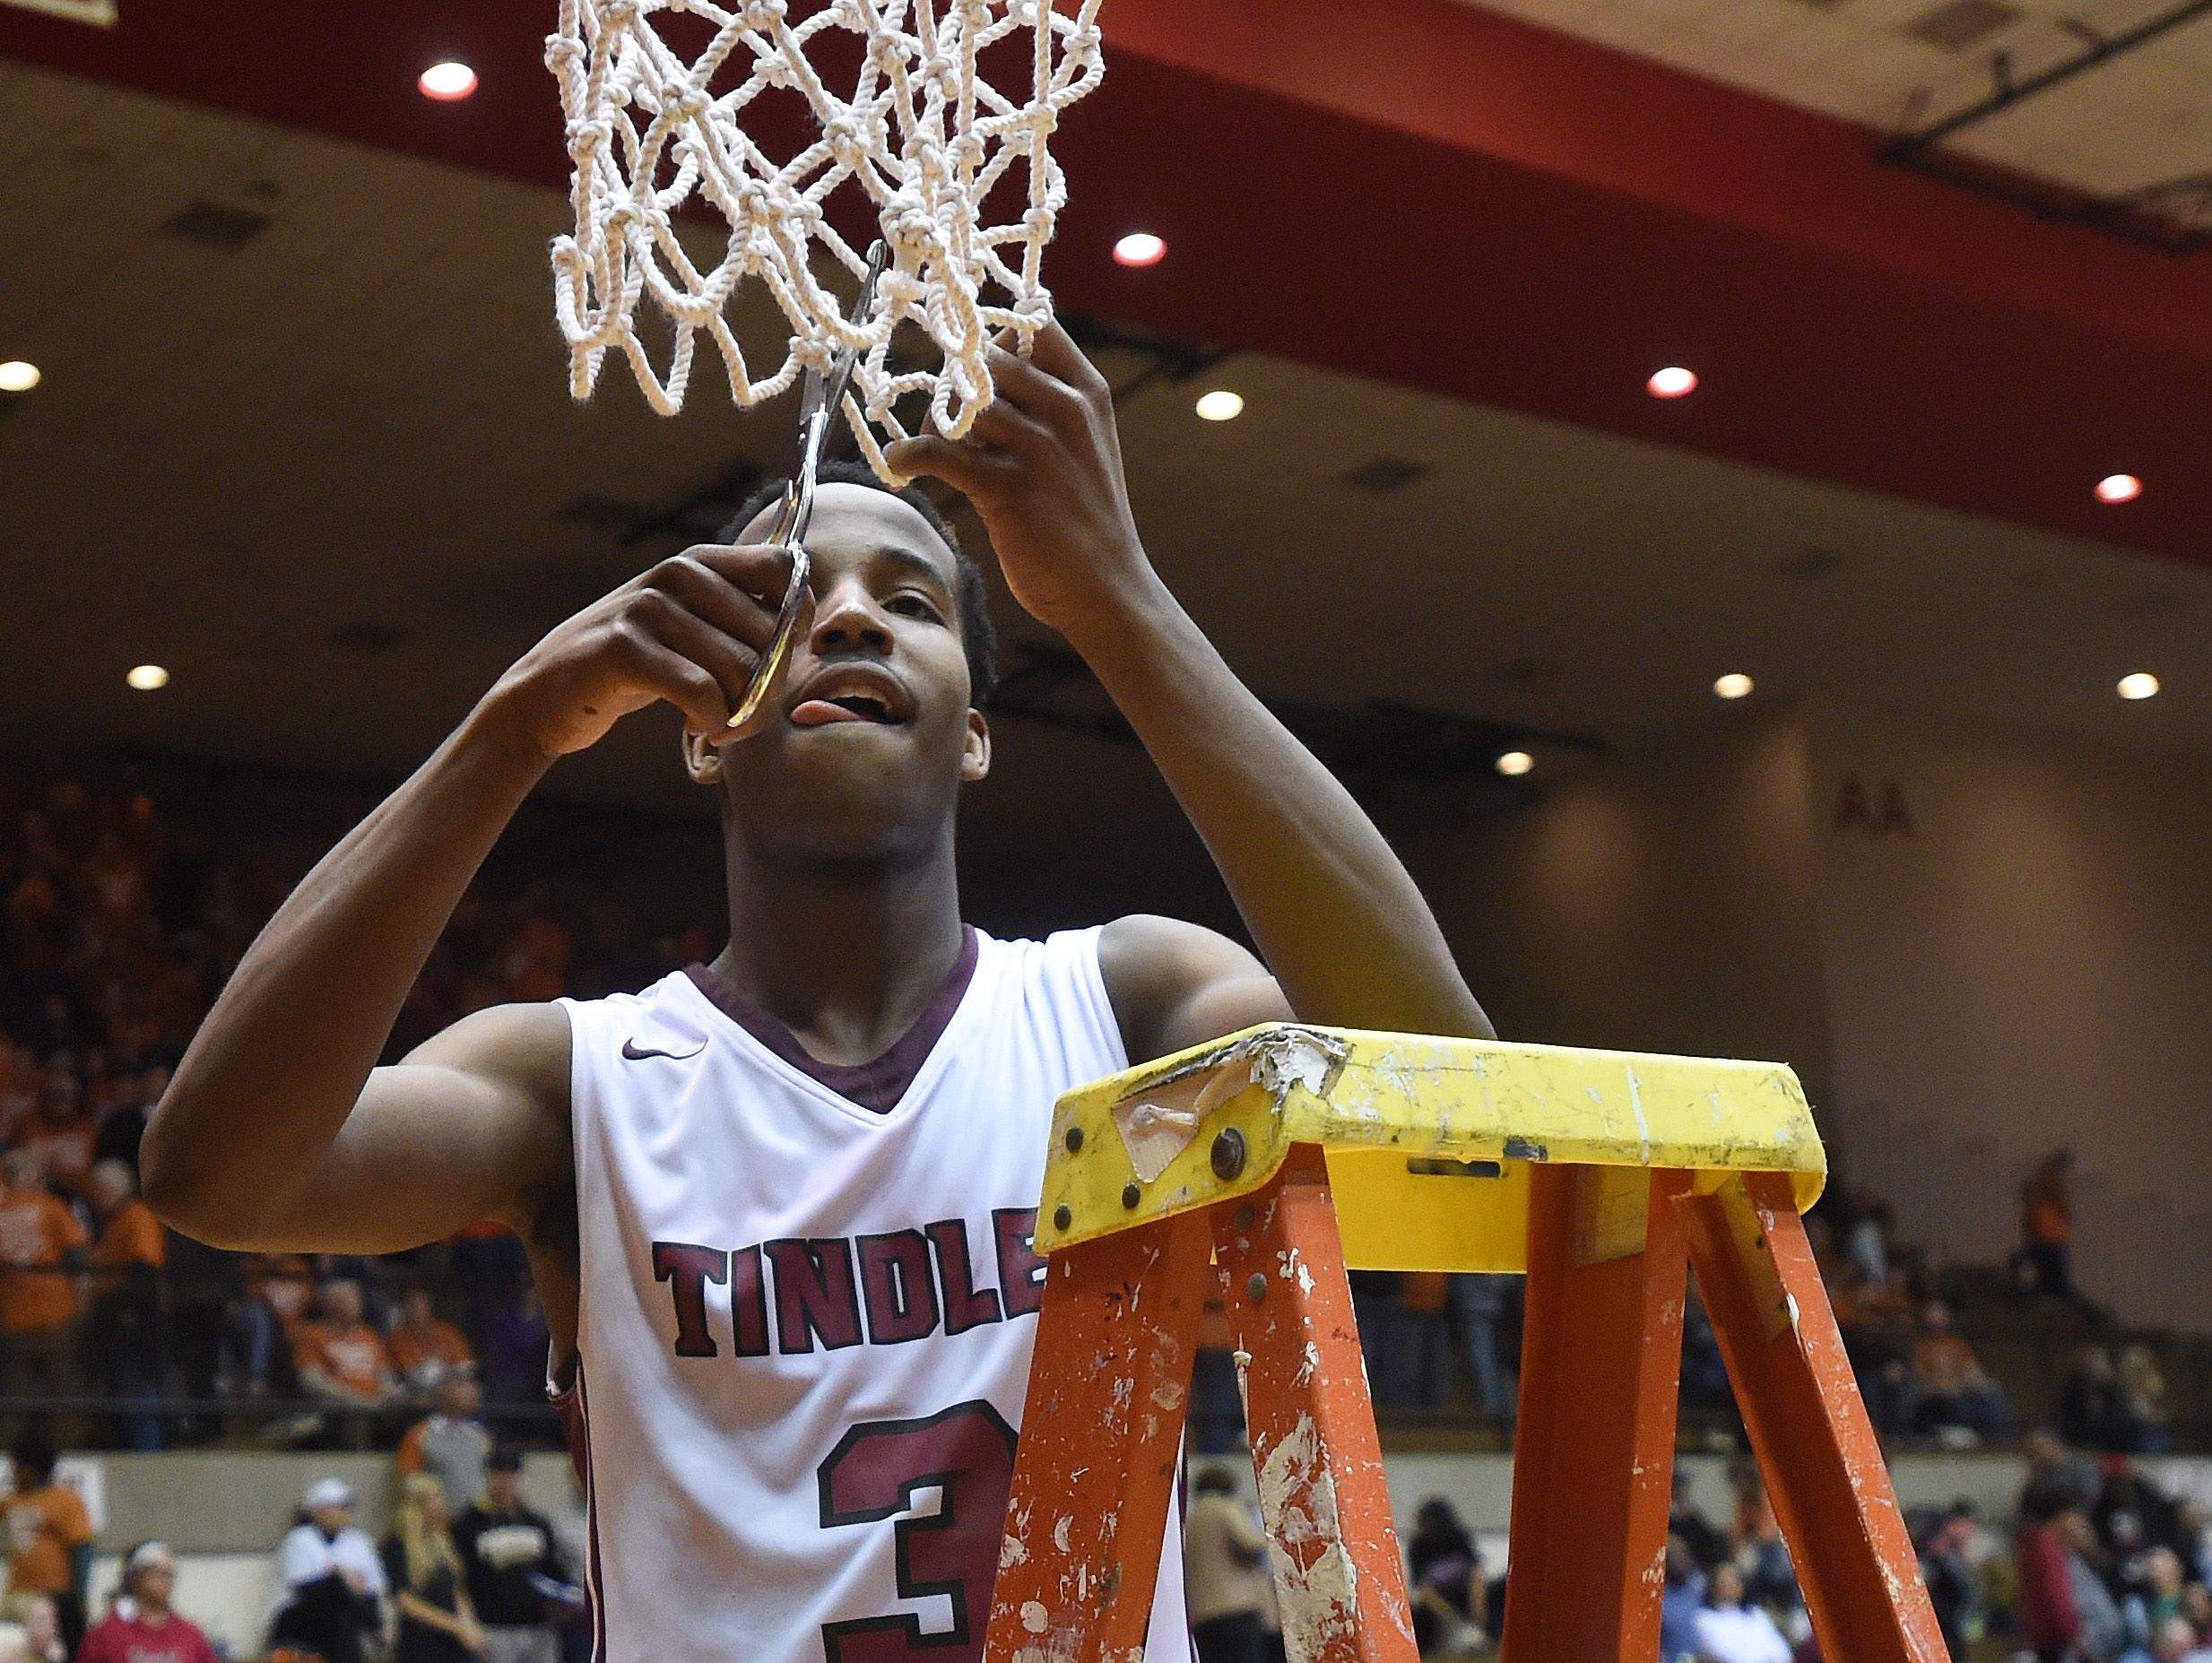 Tindley's Hunter White cuts down part of the net after beating New Washington Saturday, March 18, 2017 for the Class A basketball semi-state championship in the Tiernan Center at Richmond.